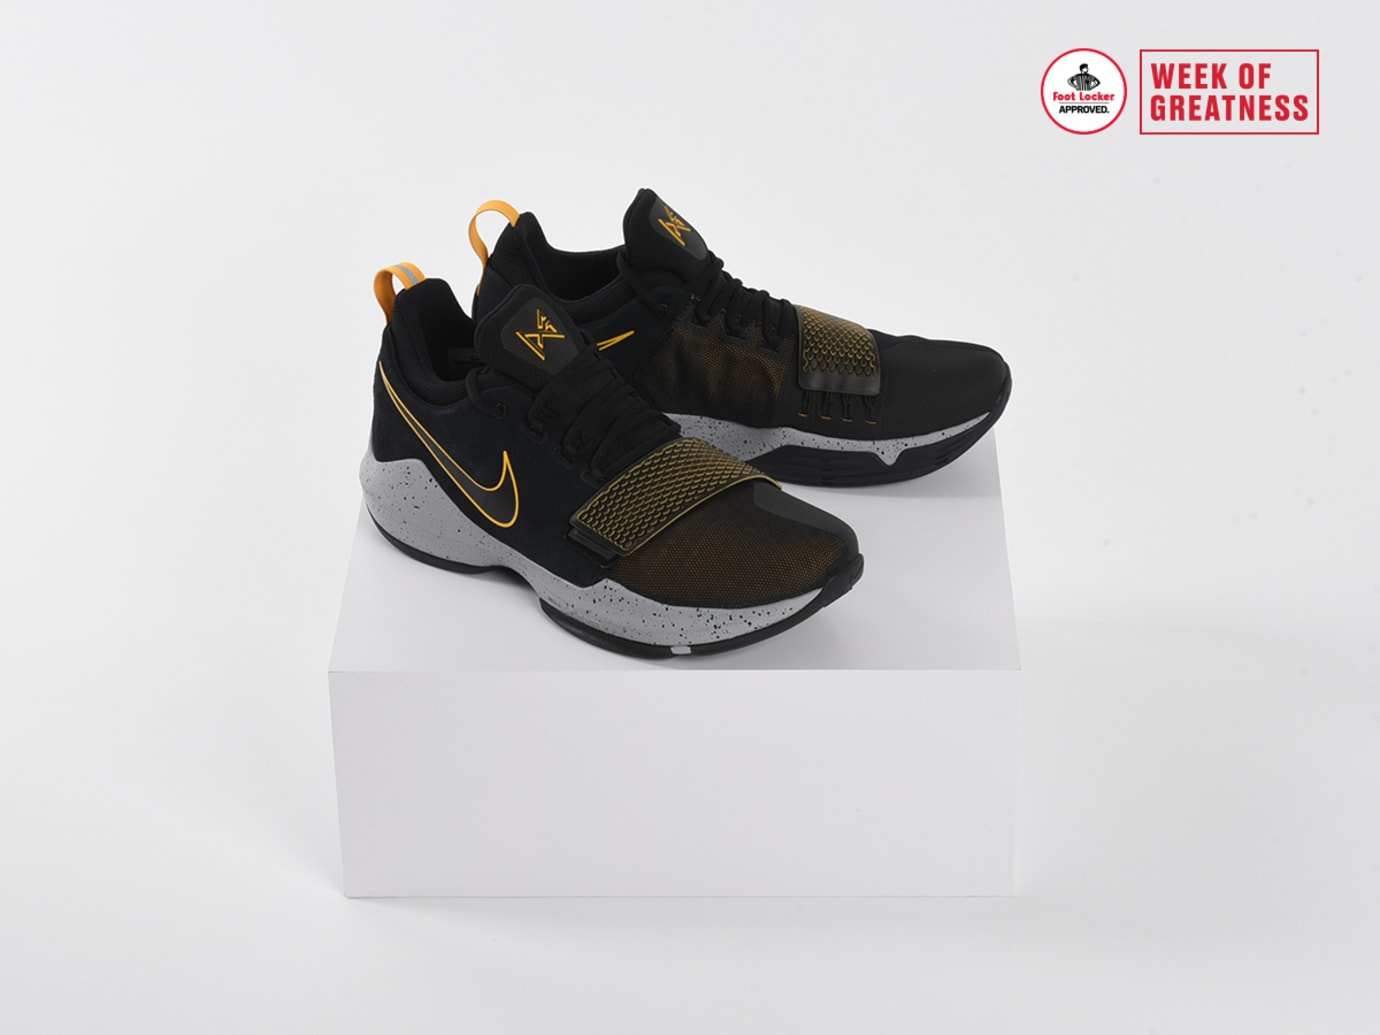 Foot Locker Week of Greatness Nike PG1 Black Gold 0aac23741